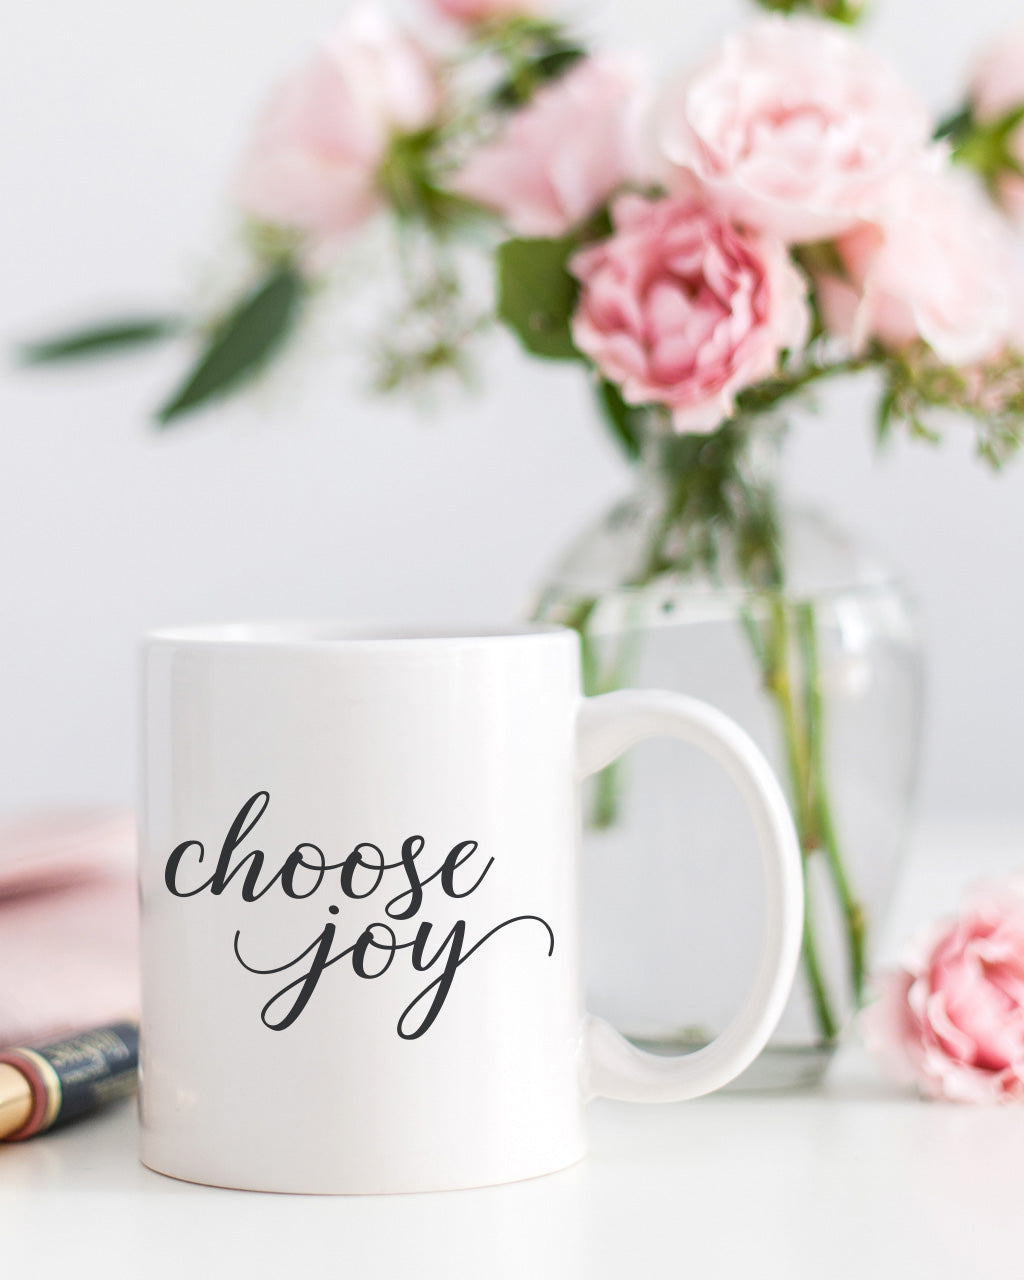 11 oz. Mug - choose joy